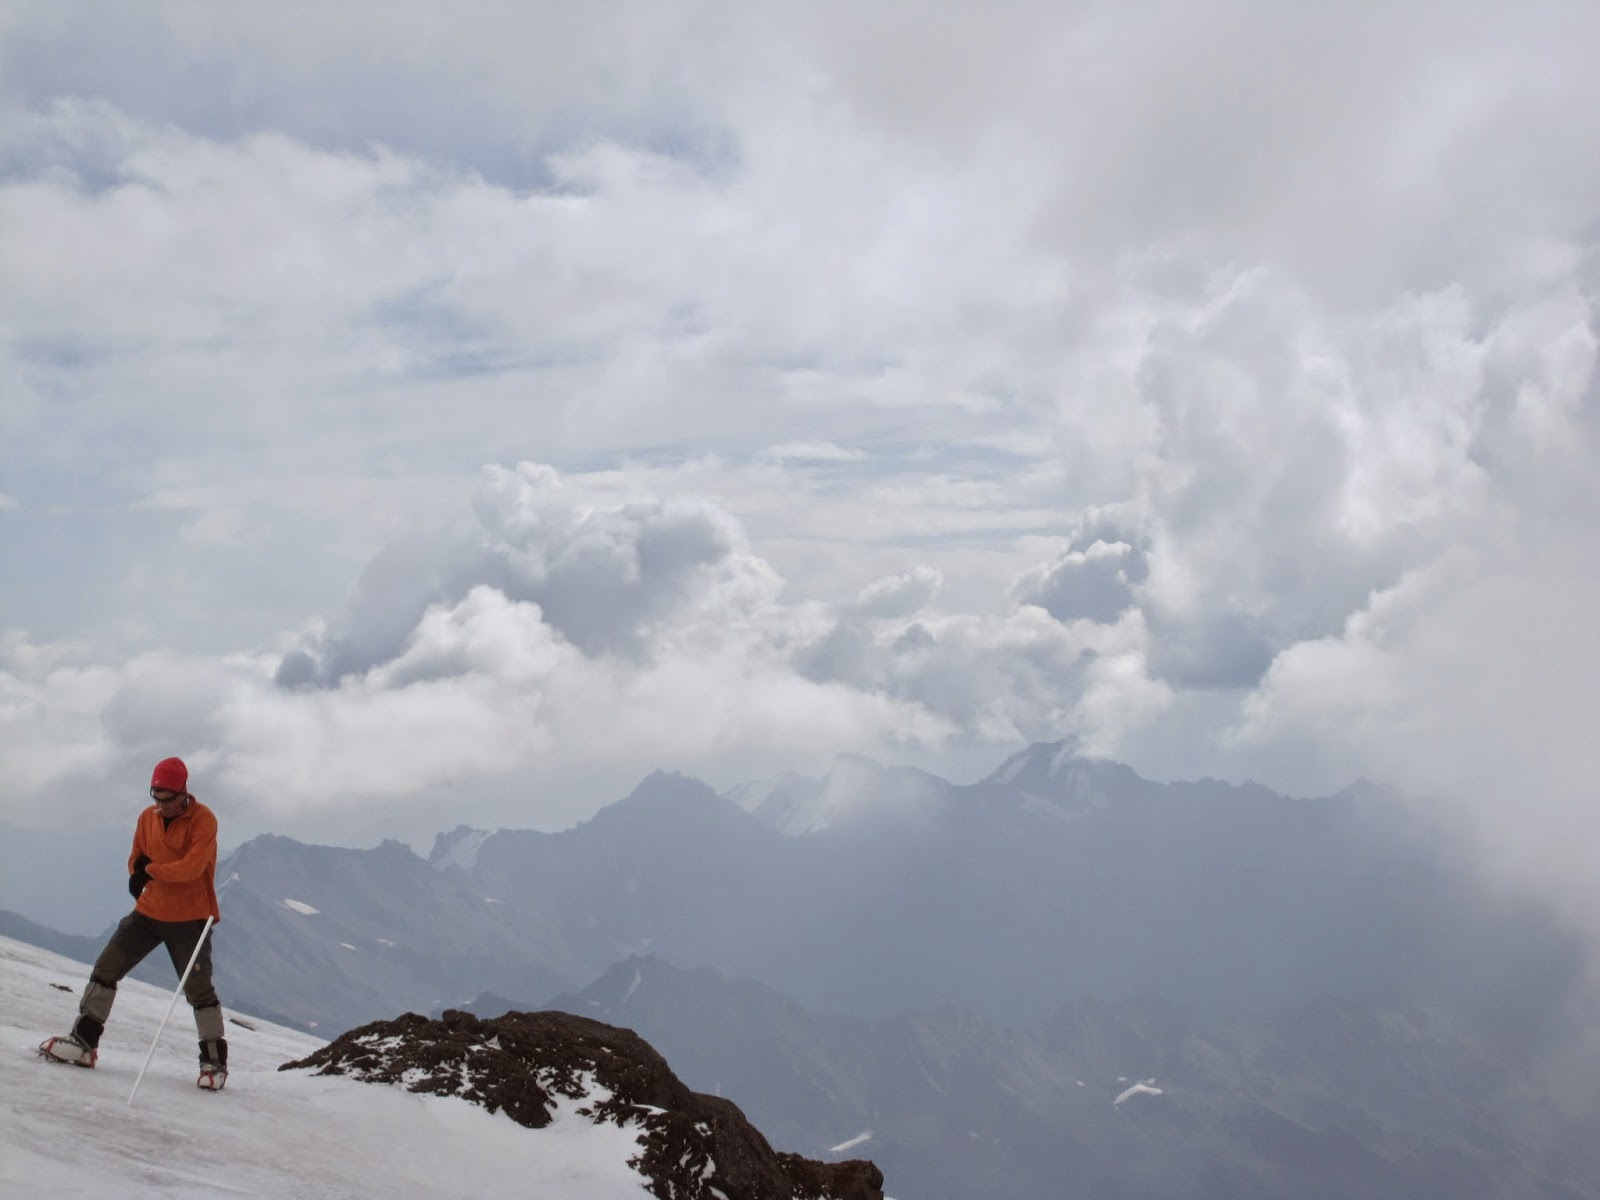 Our guide from Pilgrim Tours on Mount Elbrus